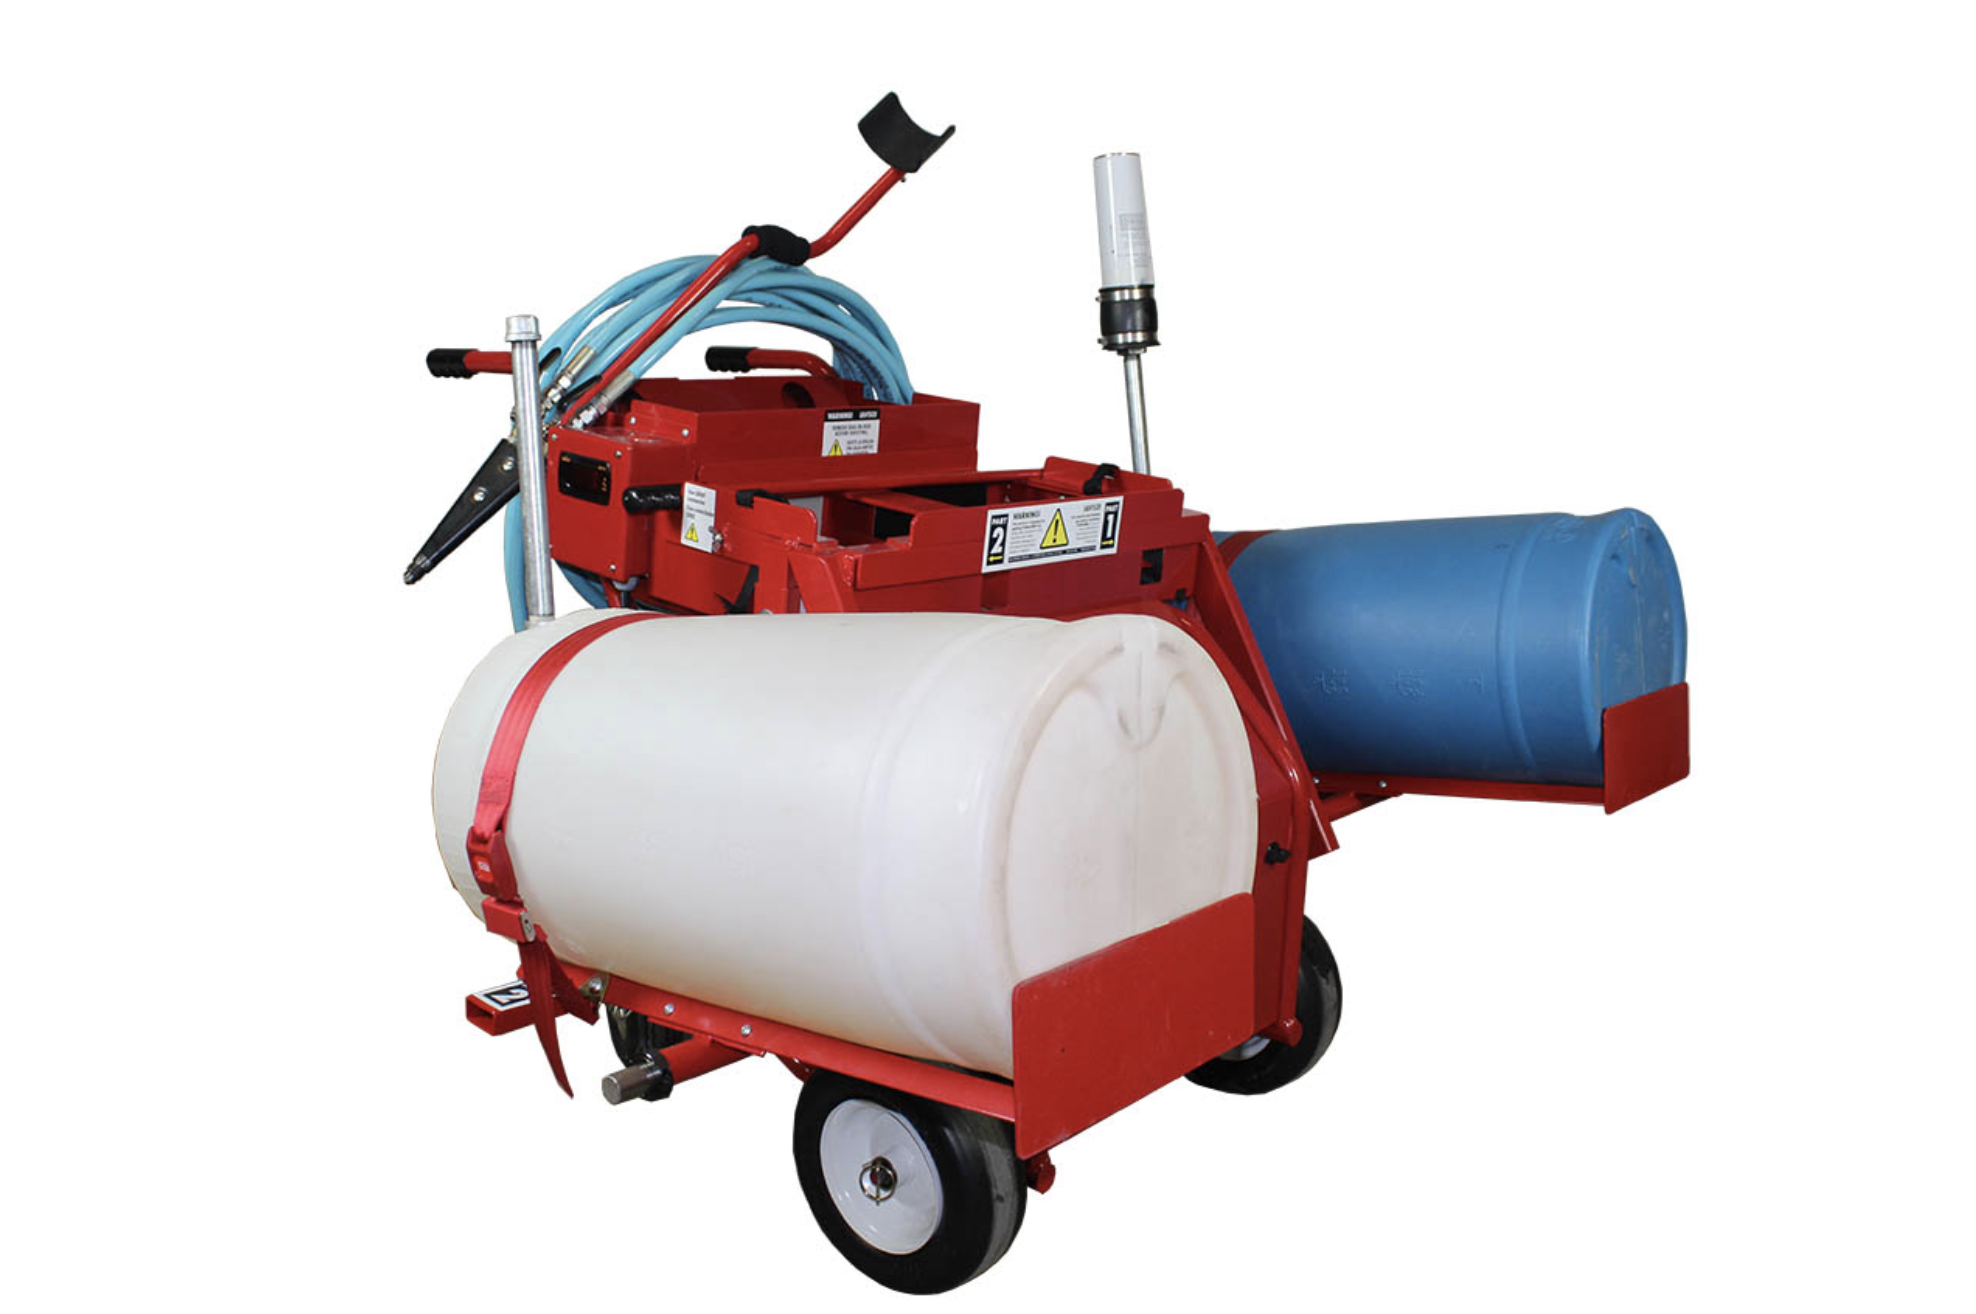 Omg Introduces A 15 Gallon Drum Conversion Kit For